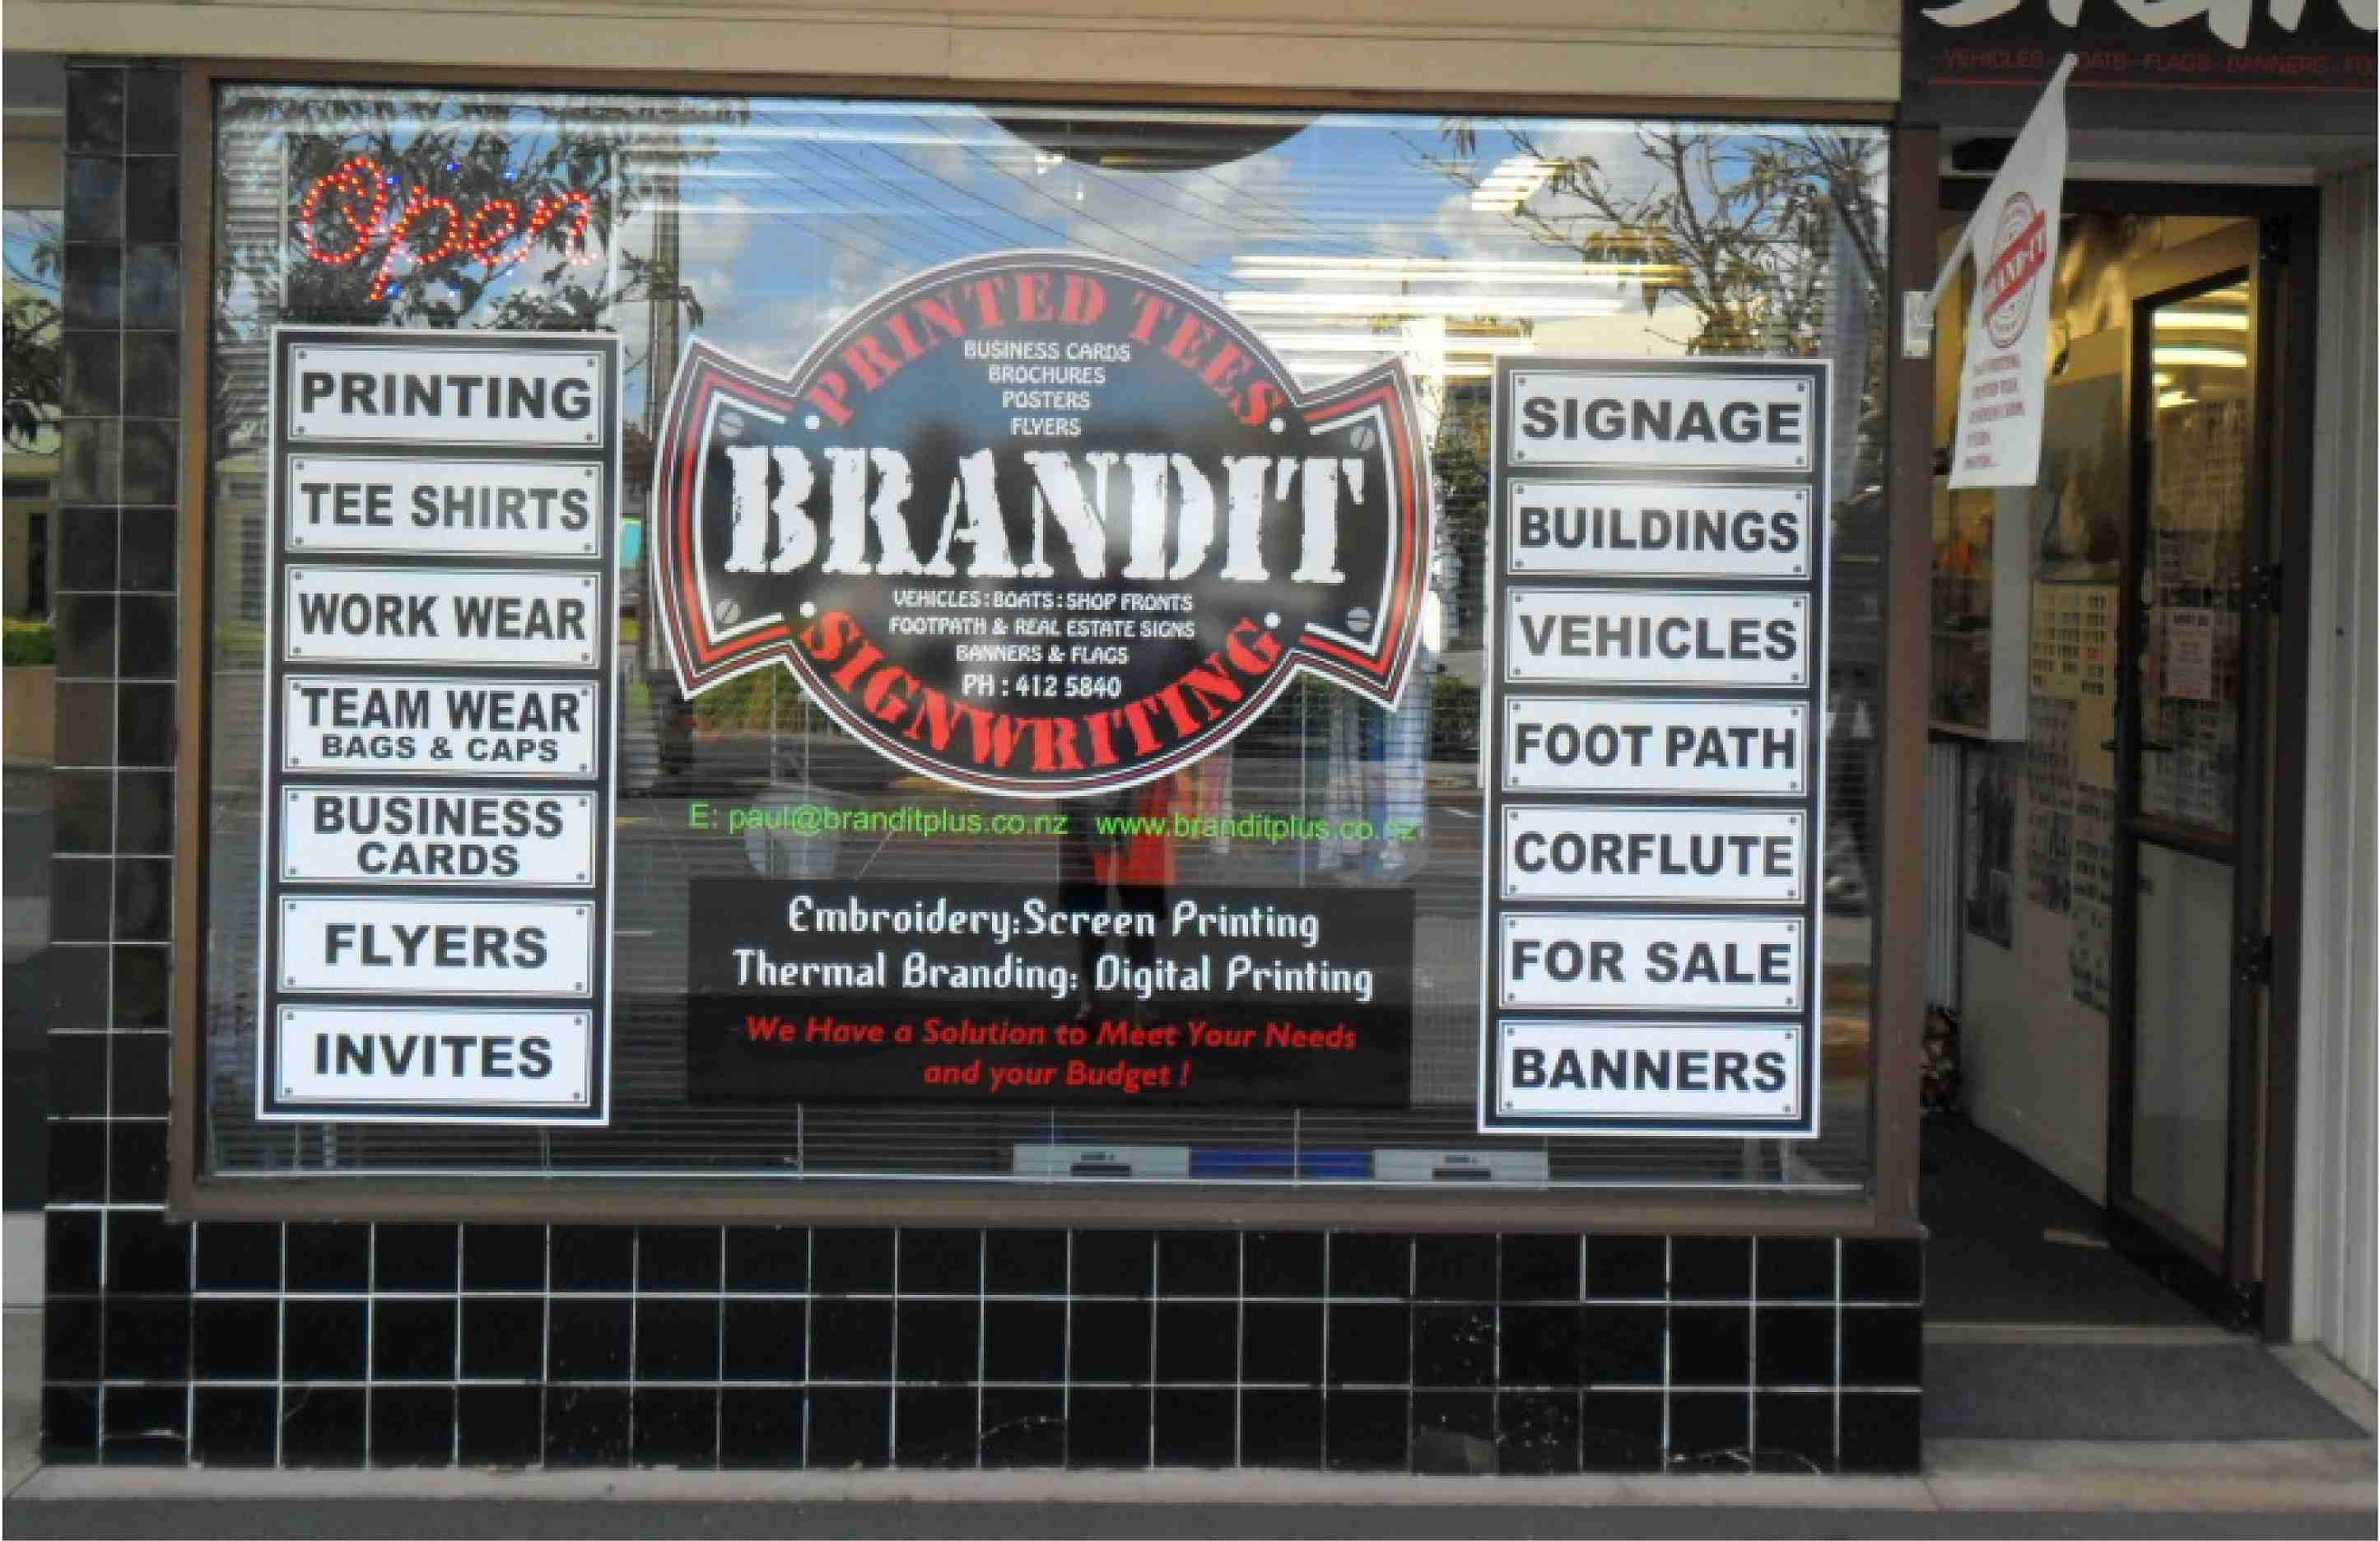 brandit plus ltd, 16 matua road, huapai, auckland, Auckland, 0810, New Zealand